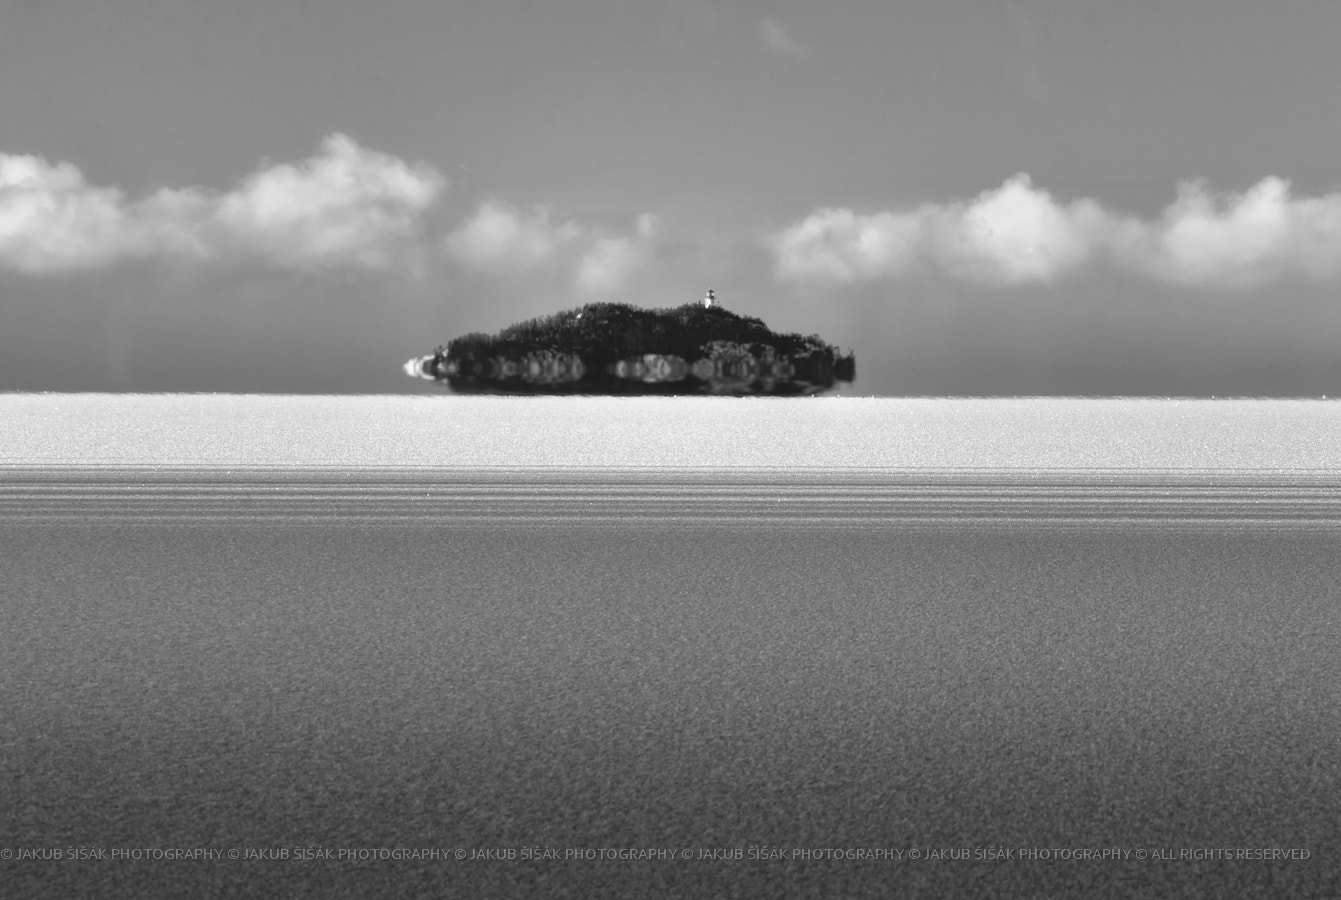 Photograph Trowbridge Island Composition by Jakub Sisak on 500px